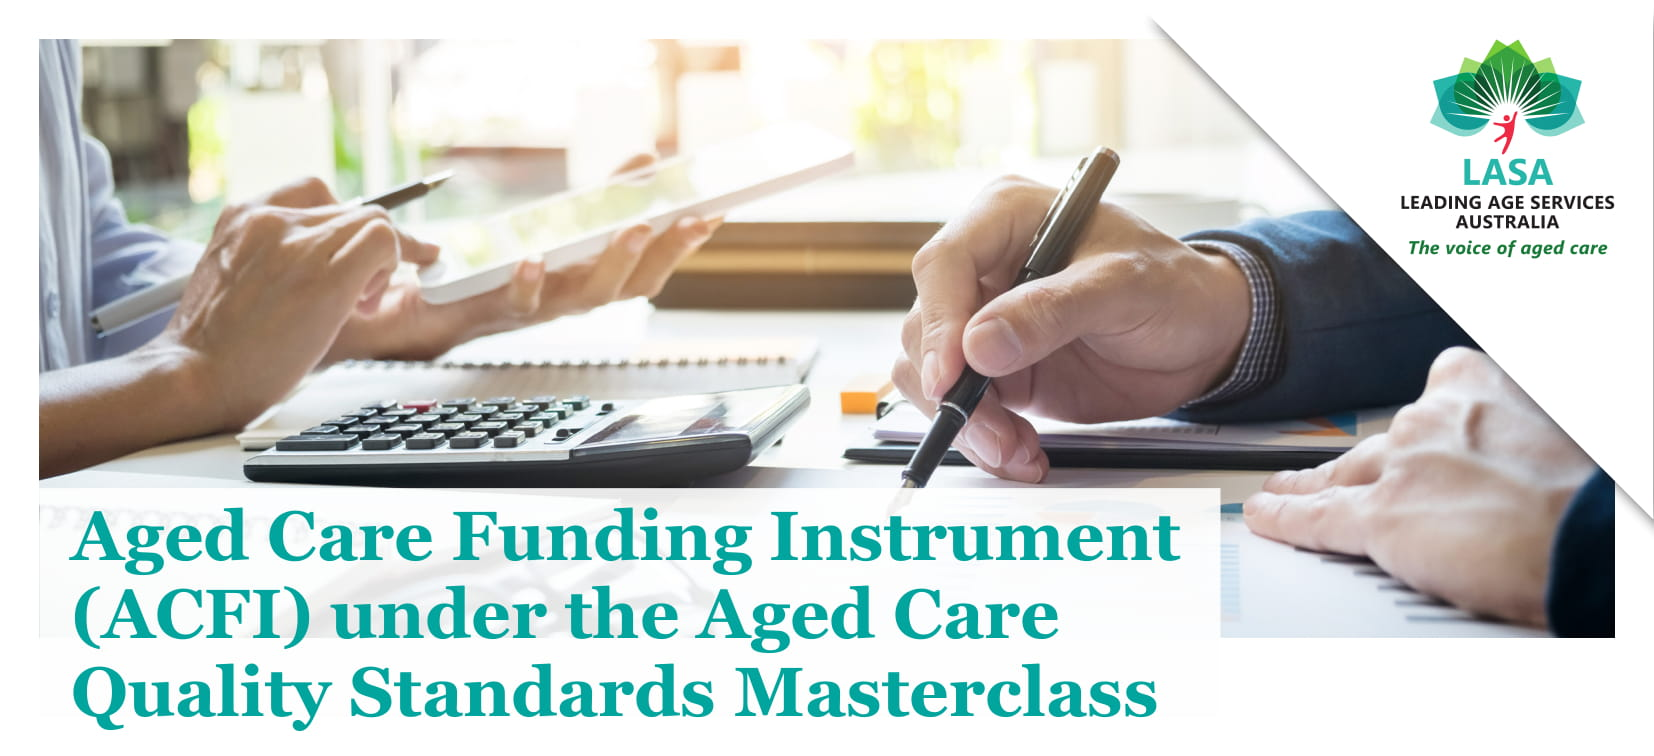 Aged Care Funding Instrument (ACFI) under the Aged Care Quality Standards Masterclass